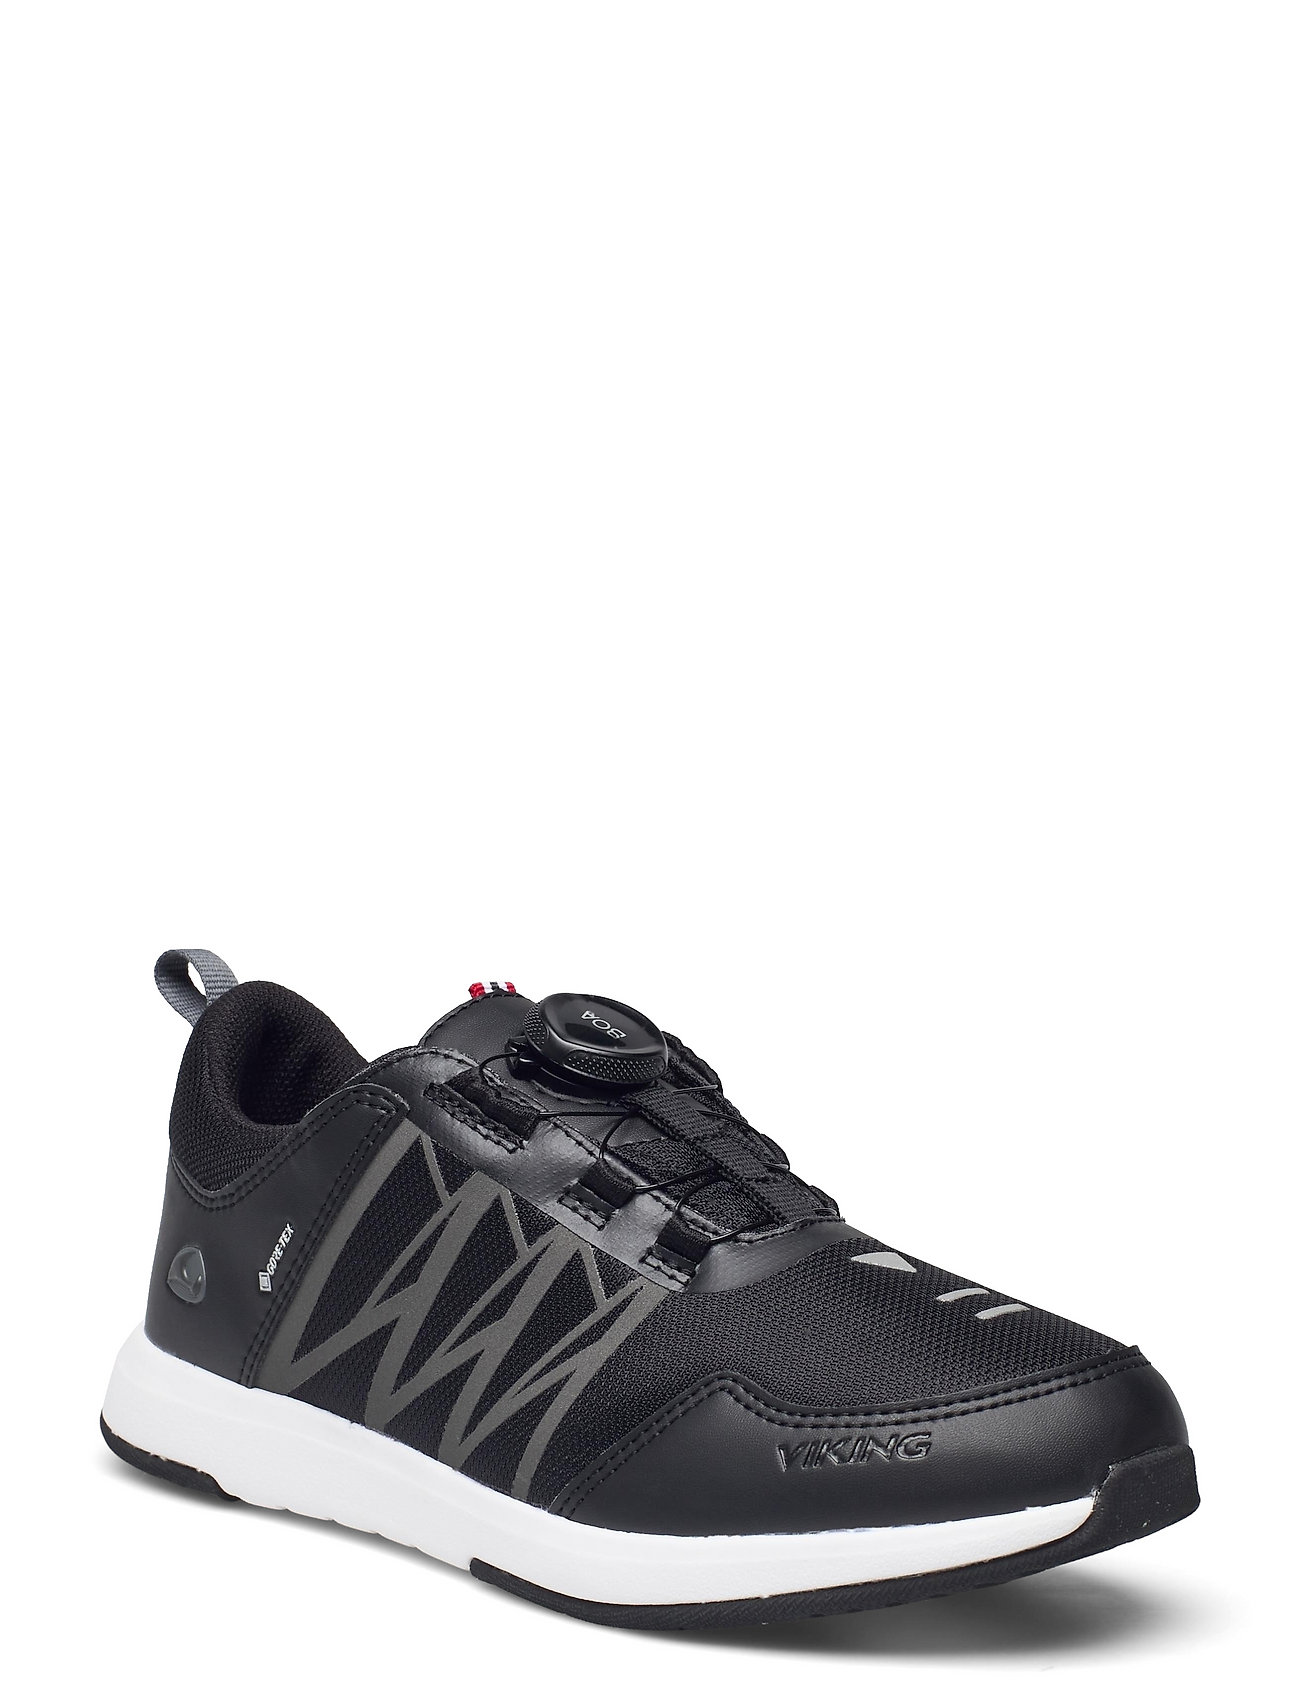 Oppsal Low Gtx Boa R Shoes Sports Shoes Running/training Shoes Sort Viking